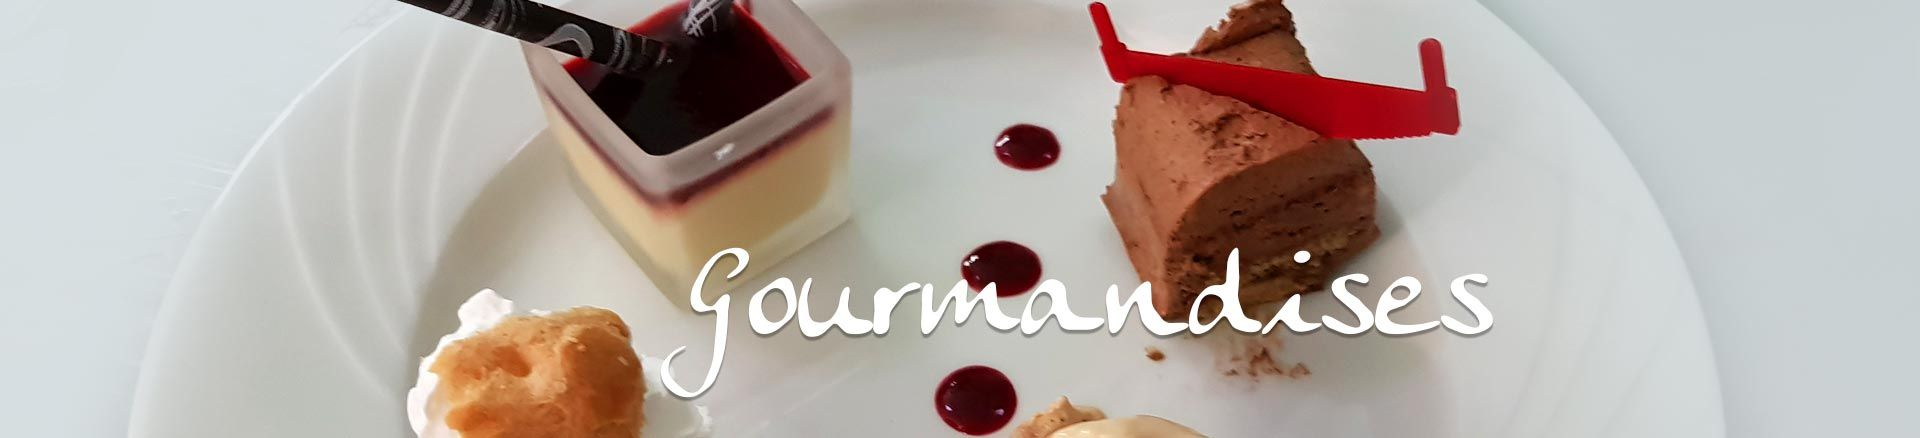 slide-gourmandises-95e4be